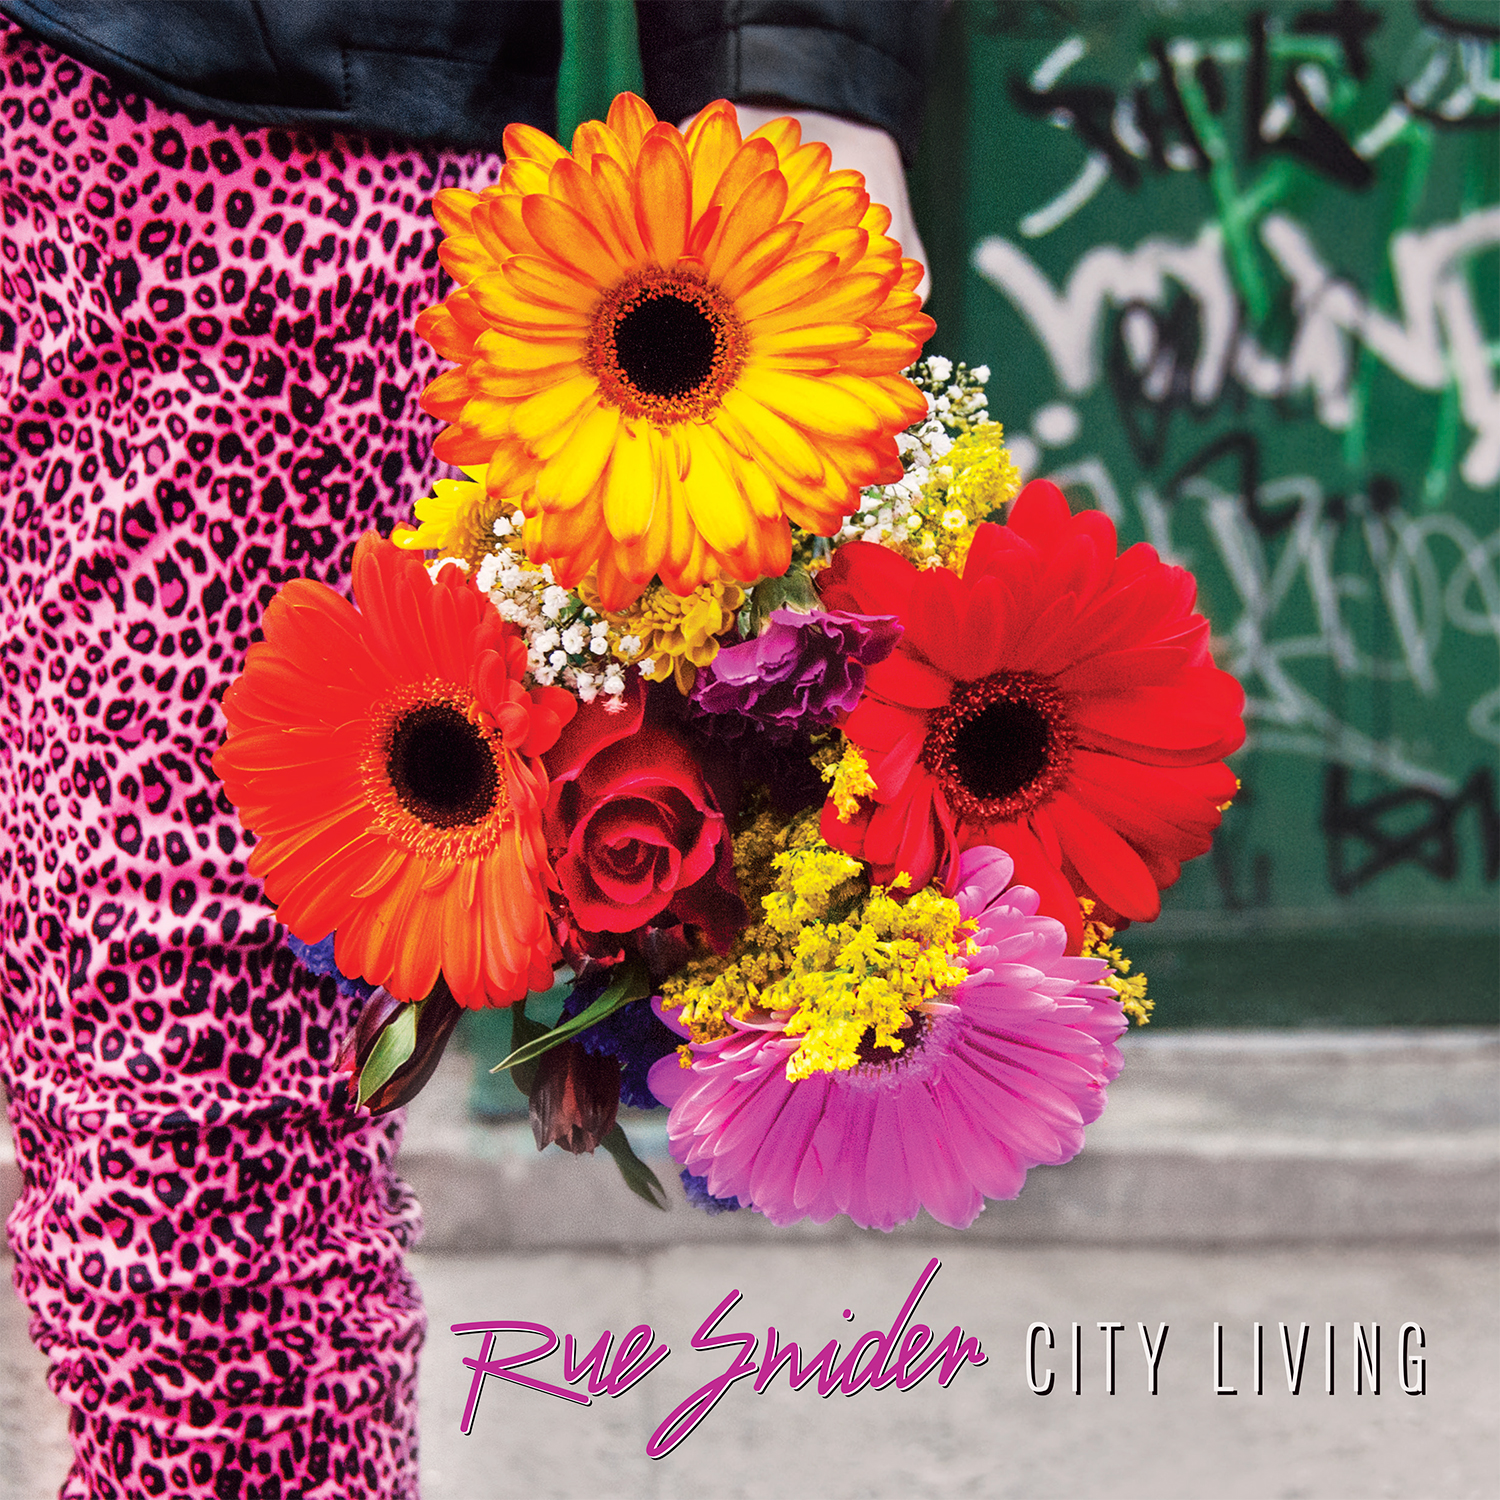 Rue-Snider_CITY-LIVING_Front_web.jpg